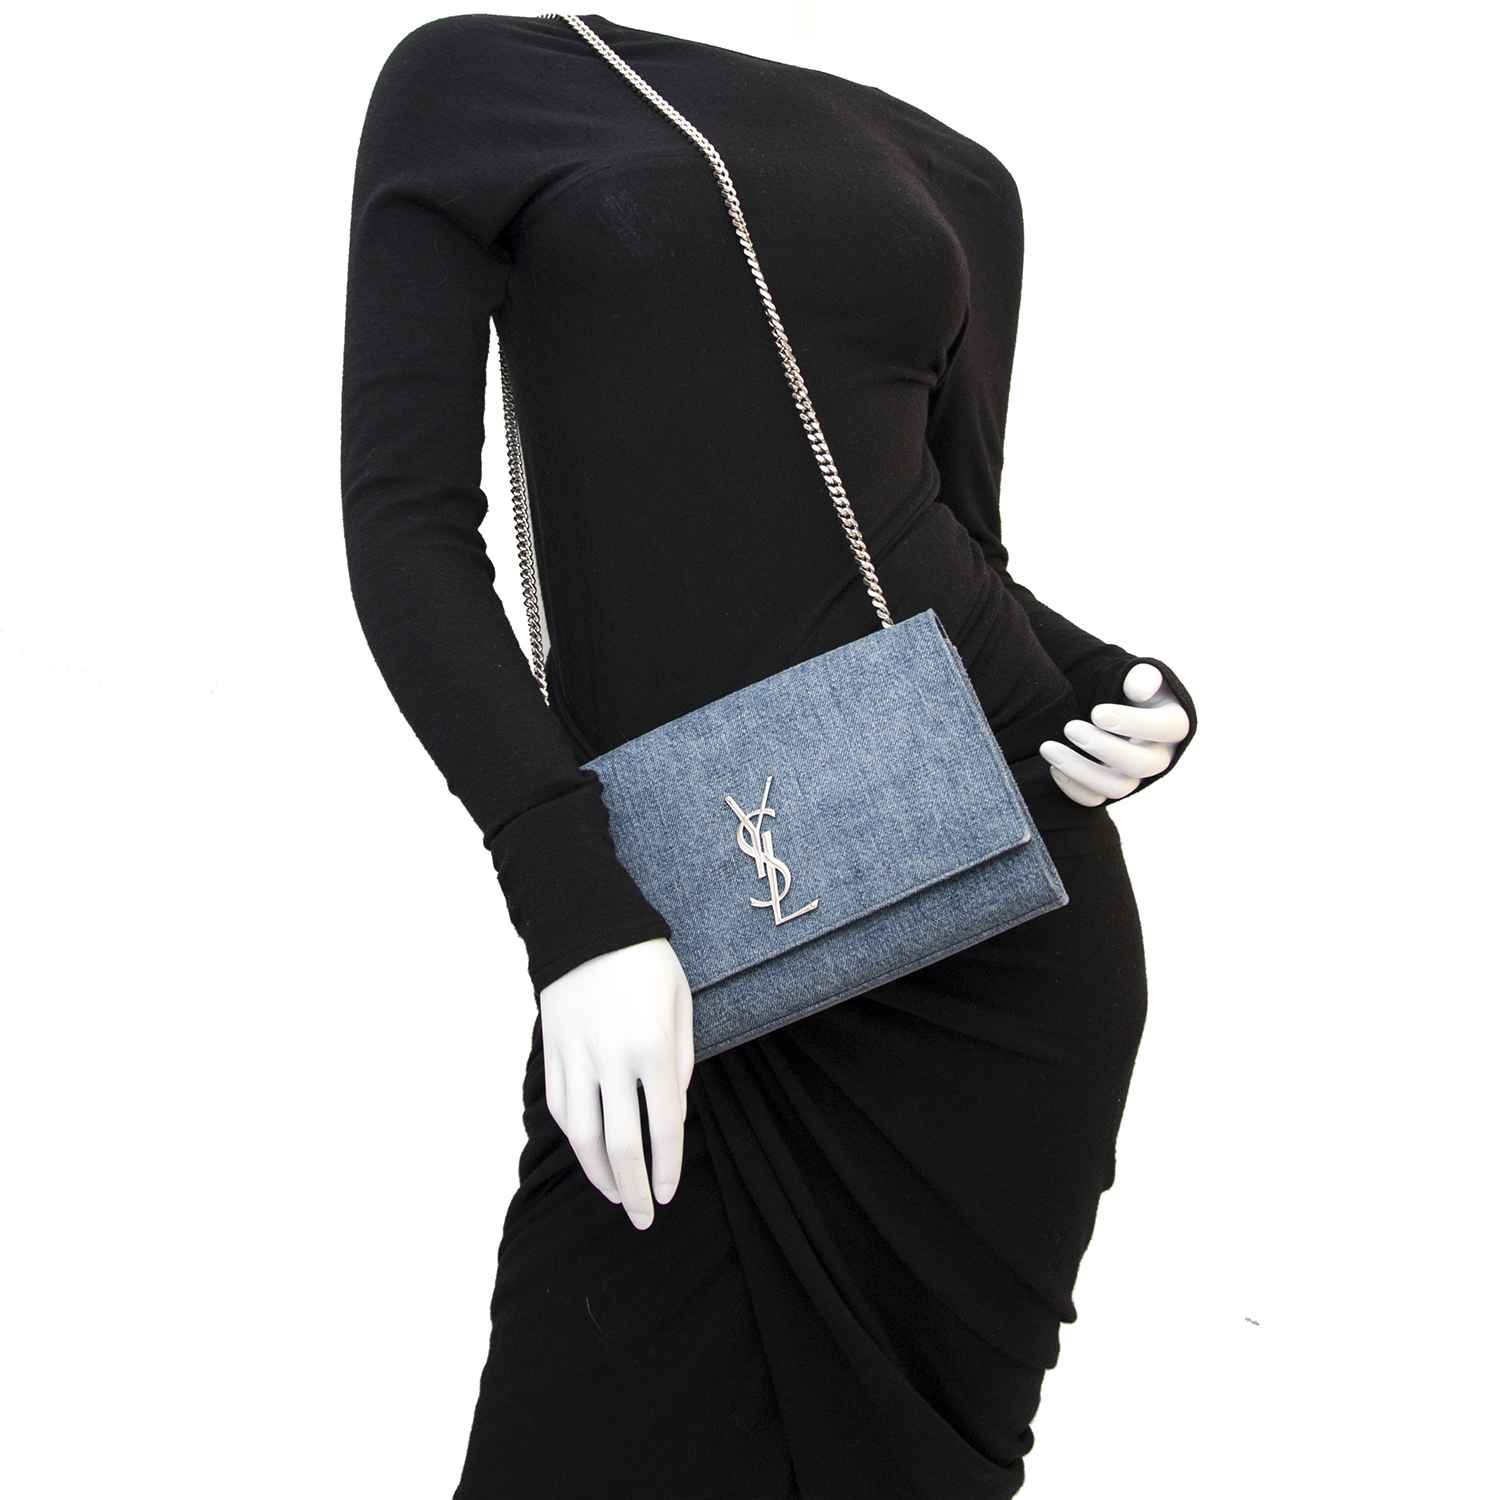 c4faa0e240e7 Safe and secure Vintage Saint Laurent Kate bag for the best price at  Labellov webshop. Safe and secure